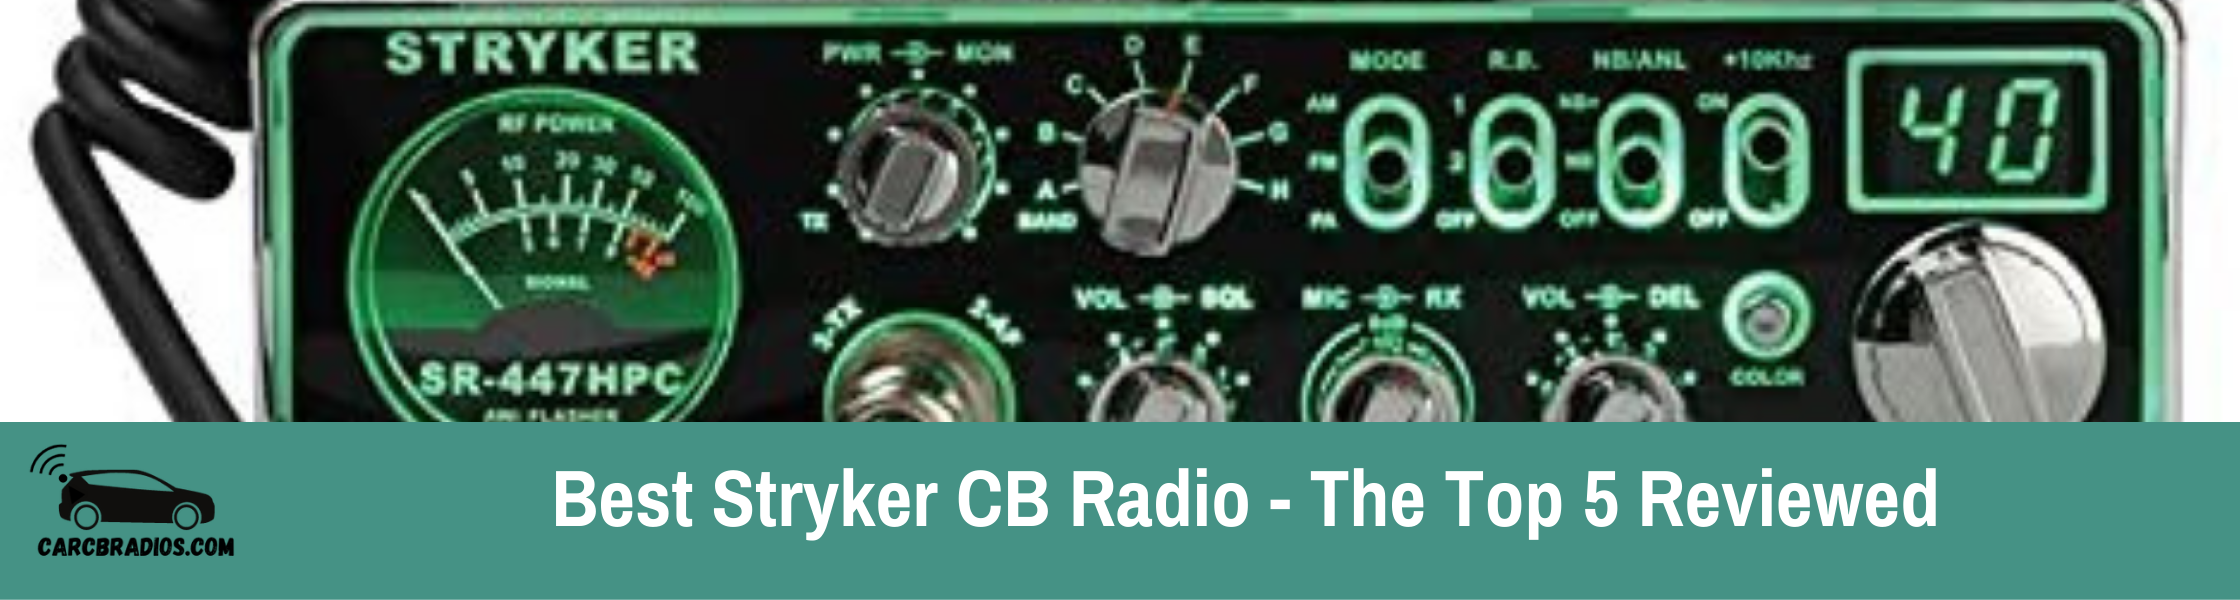 Best Stryker CB Radio - The Top 5 Reviewed: Stryker makes a high-quality 10 meter radio that can be converted to CB radios. Here are the 5 best that you can purchase